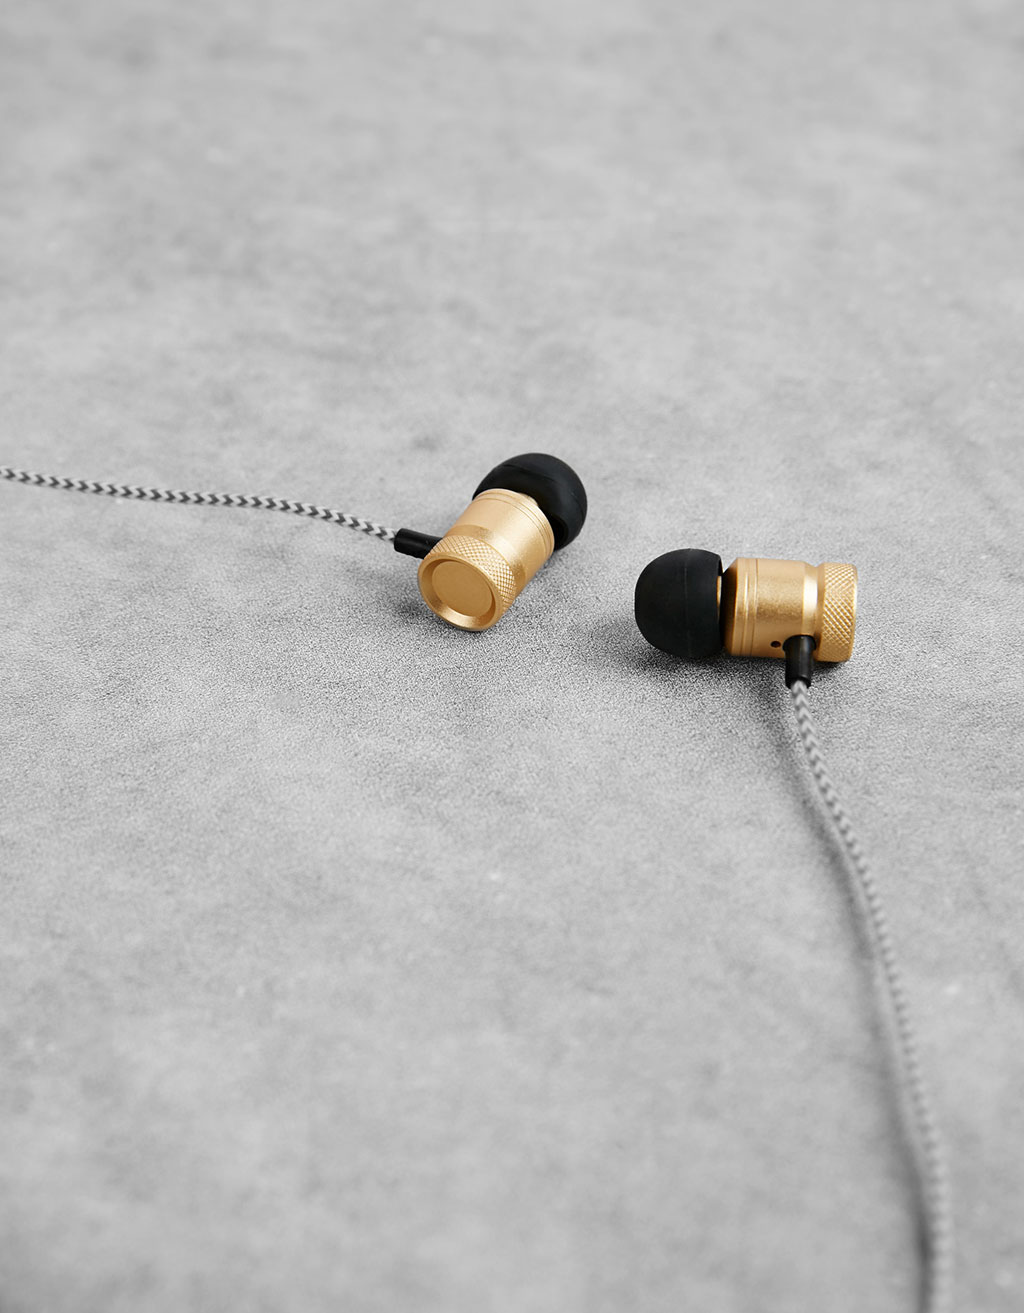 Metal earphones